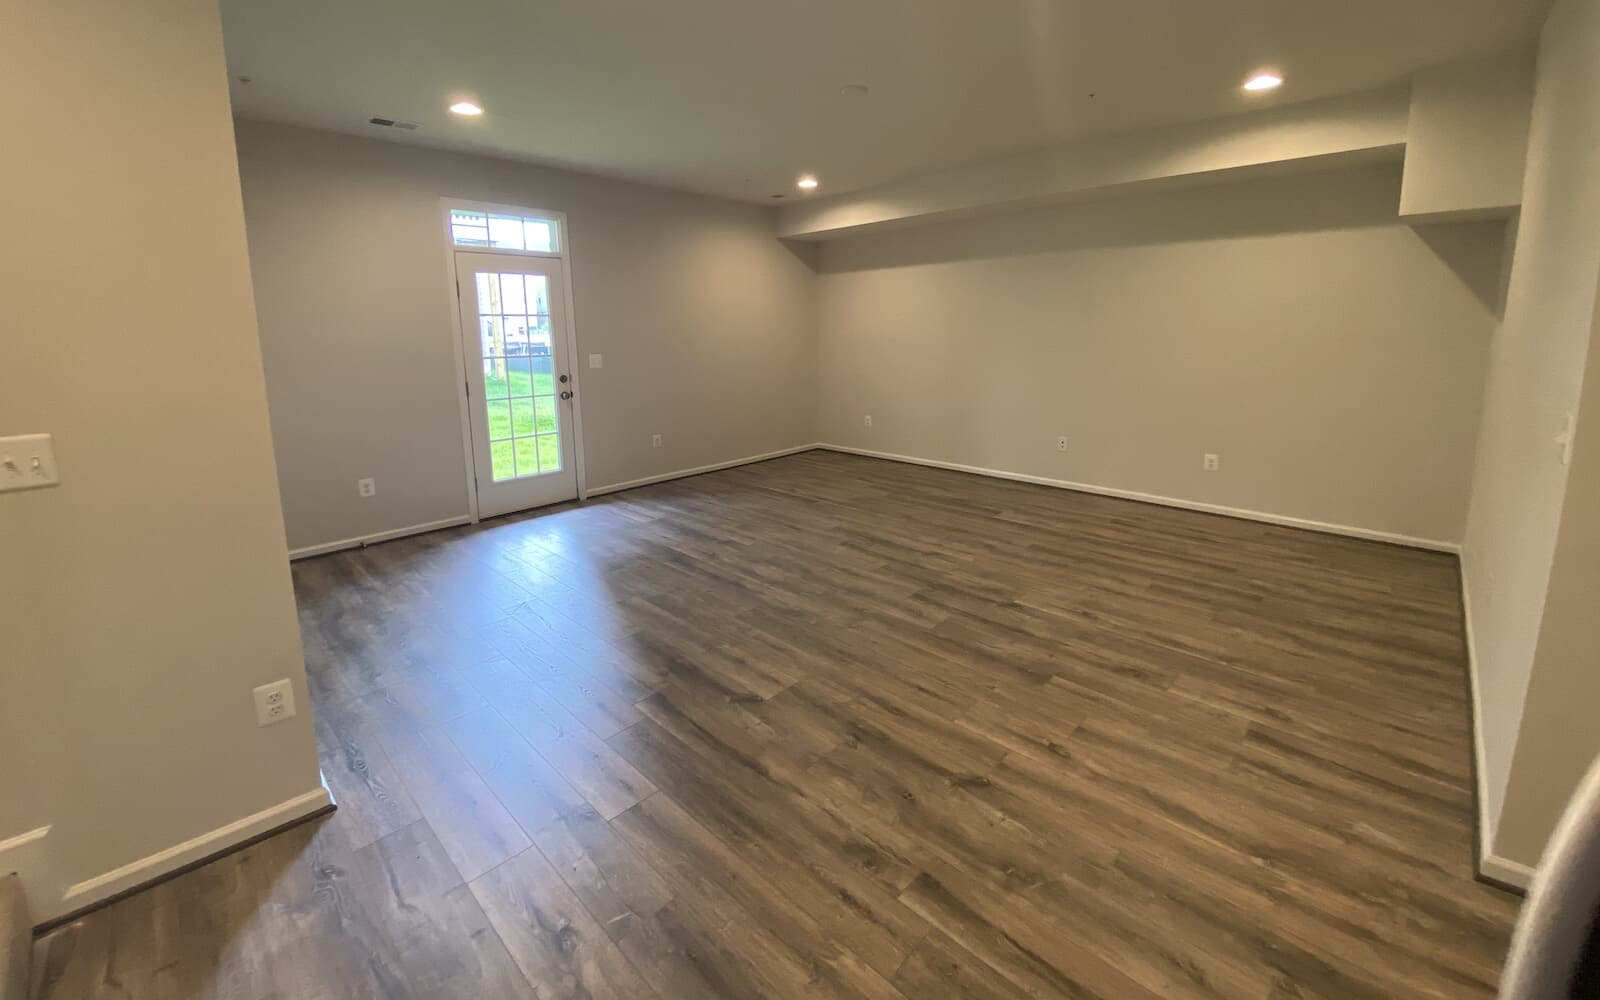 recreation-room-orion-homesite5009-bradfords-brookfield-residential